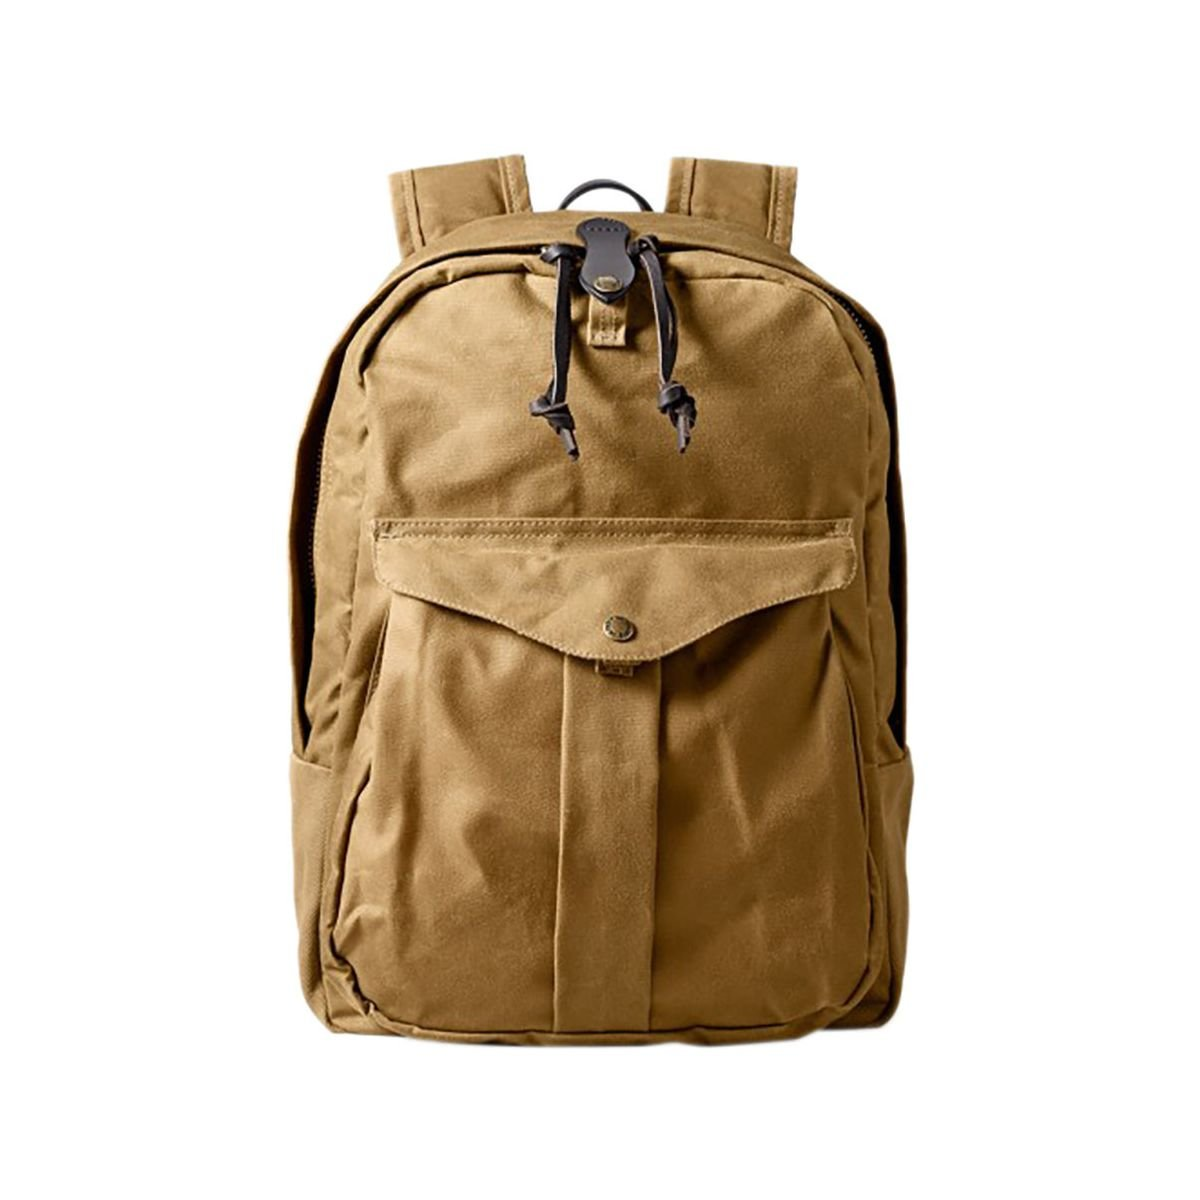 Filson Unisex Journeyman Backpack Tan 1 One Size